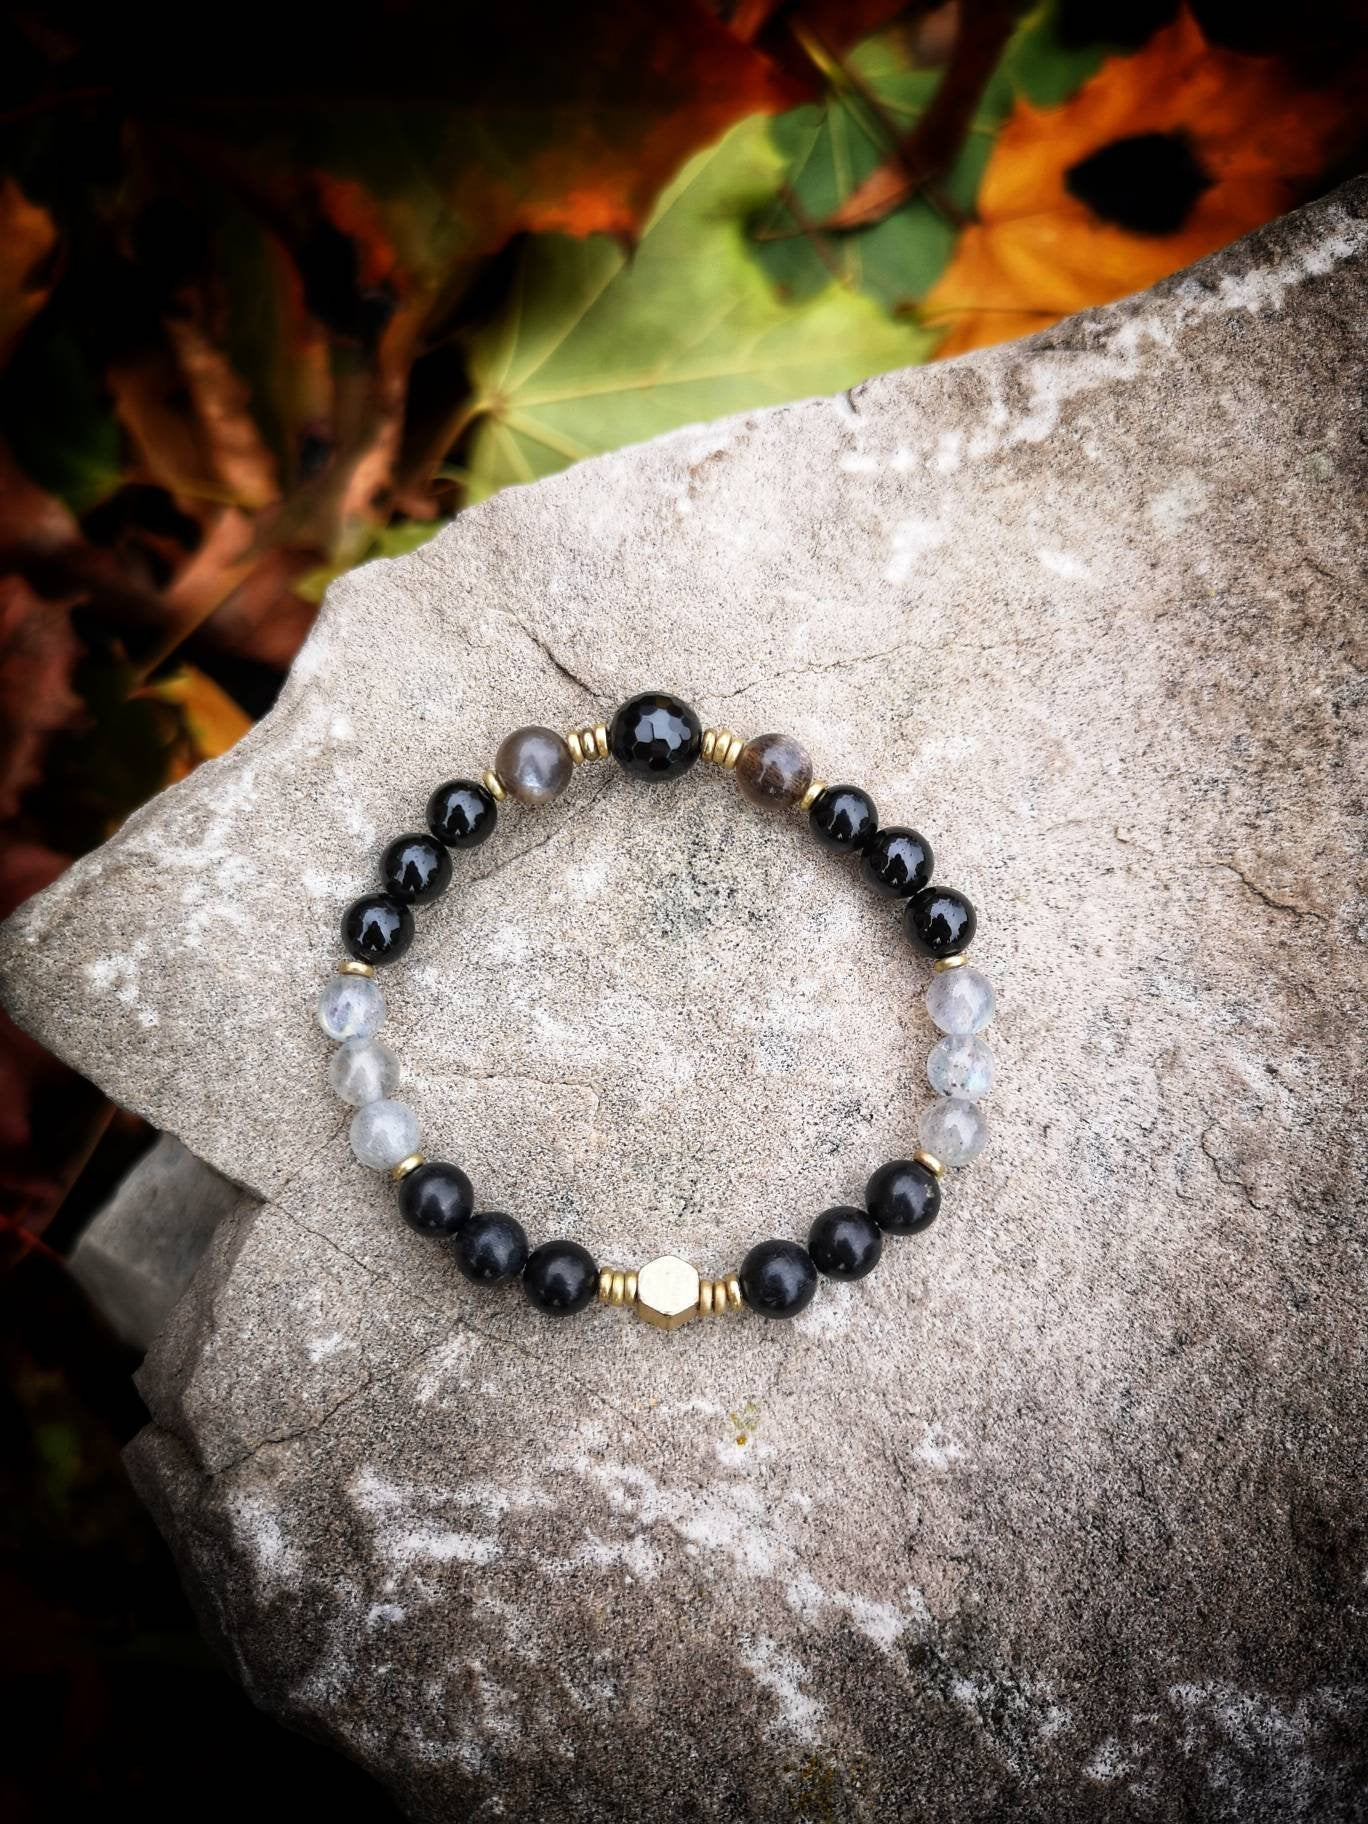 anxiety relief tarot healing crystals for cancer treatment emf protection 5g protection empath jewelry celestial Shungite bracelet